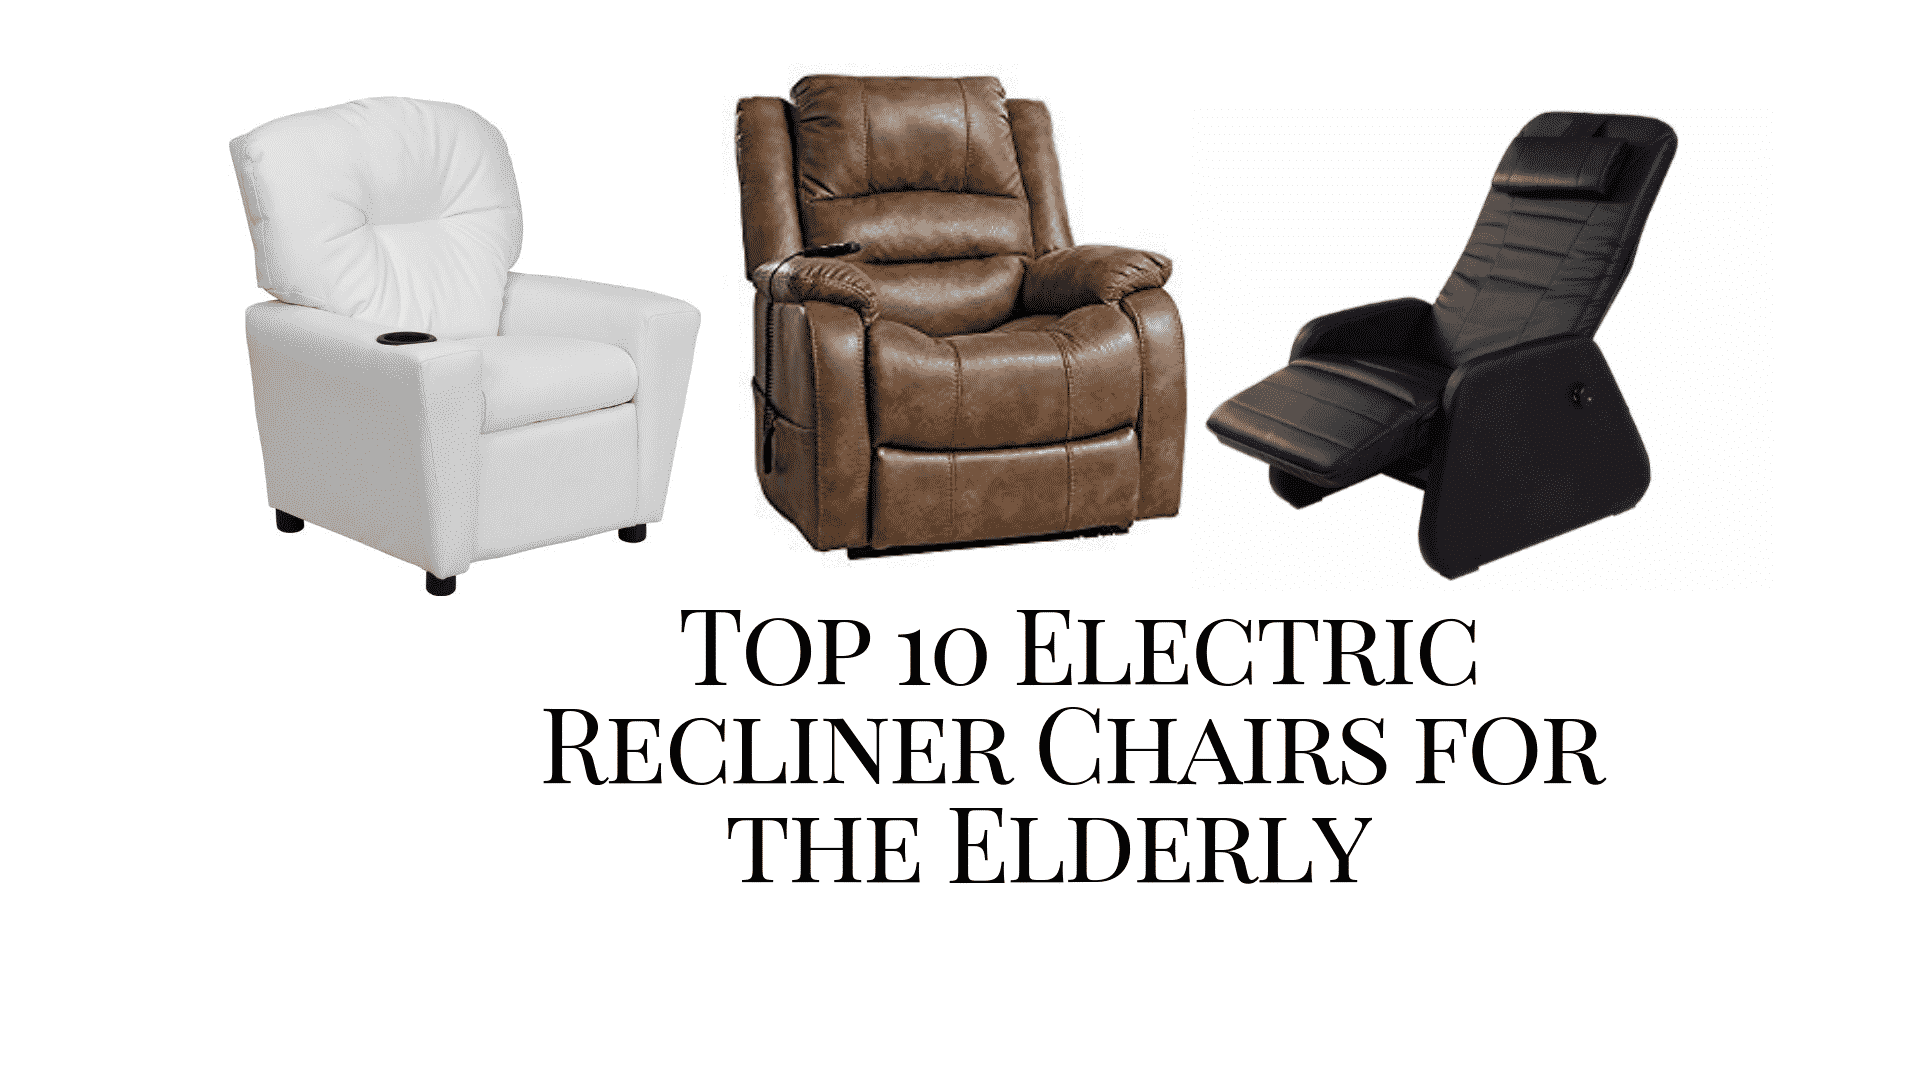 Sensational Top 10 Electric Recliner Chairs For The Elderly 2019 Evergreenethics Interior Chair Design Evergreenethicsorg